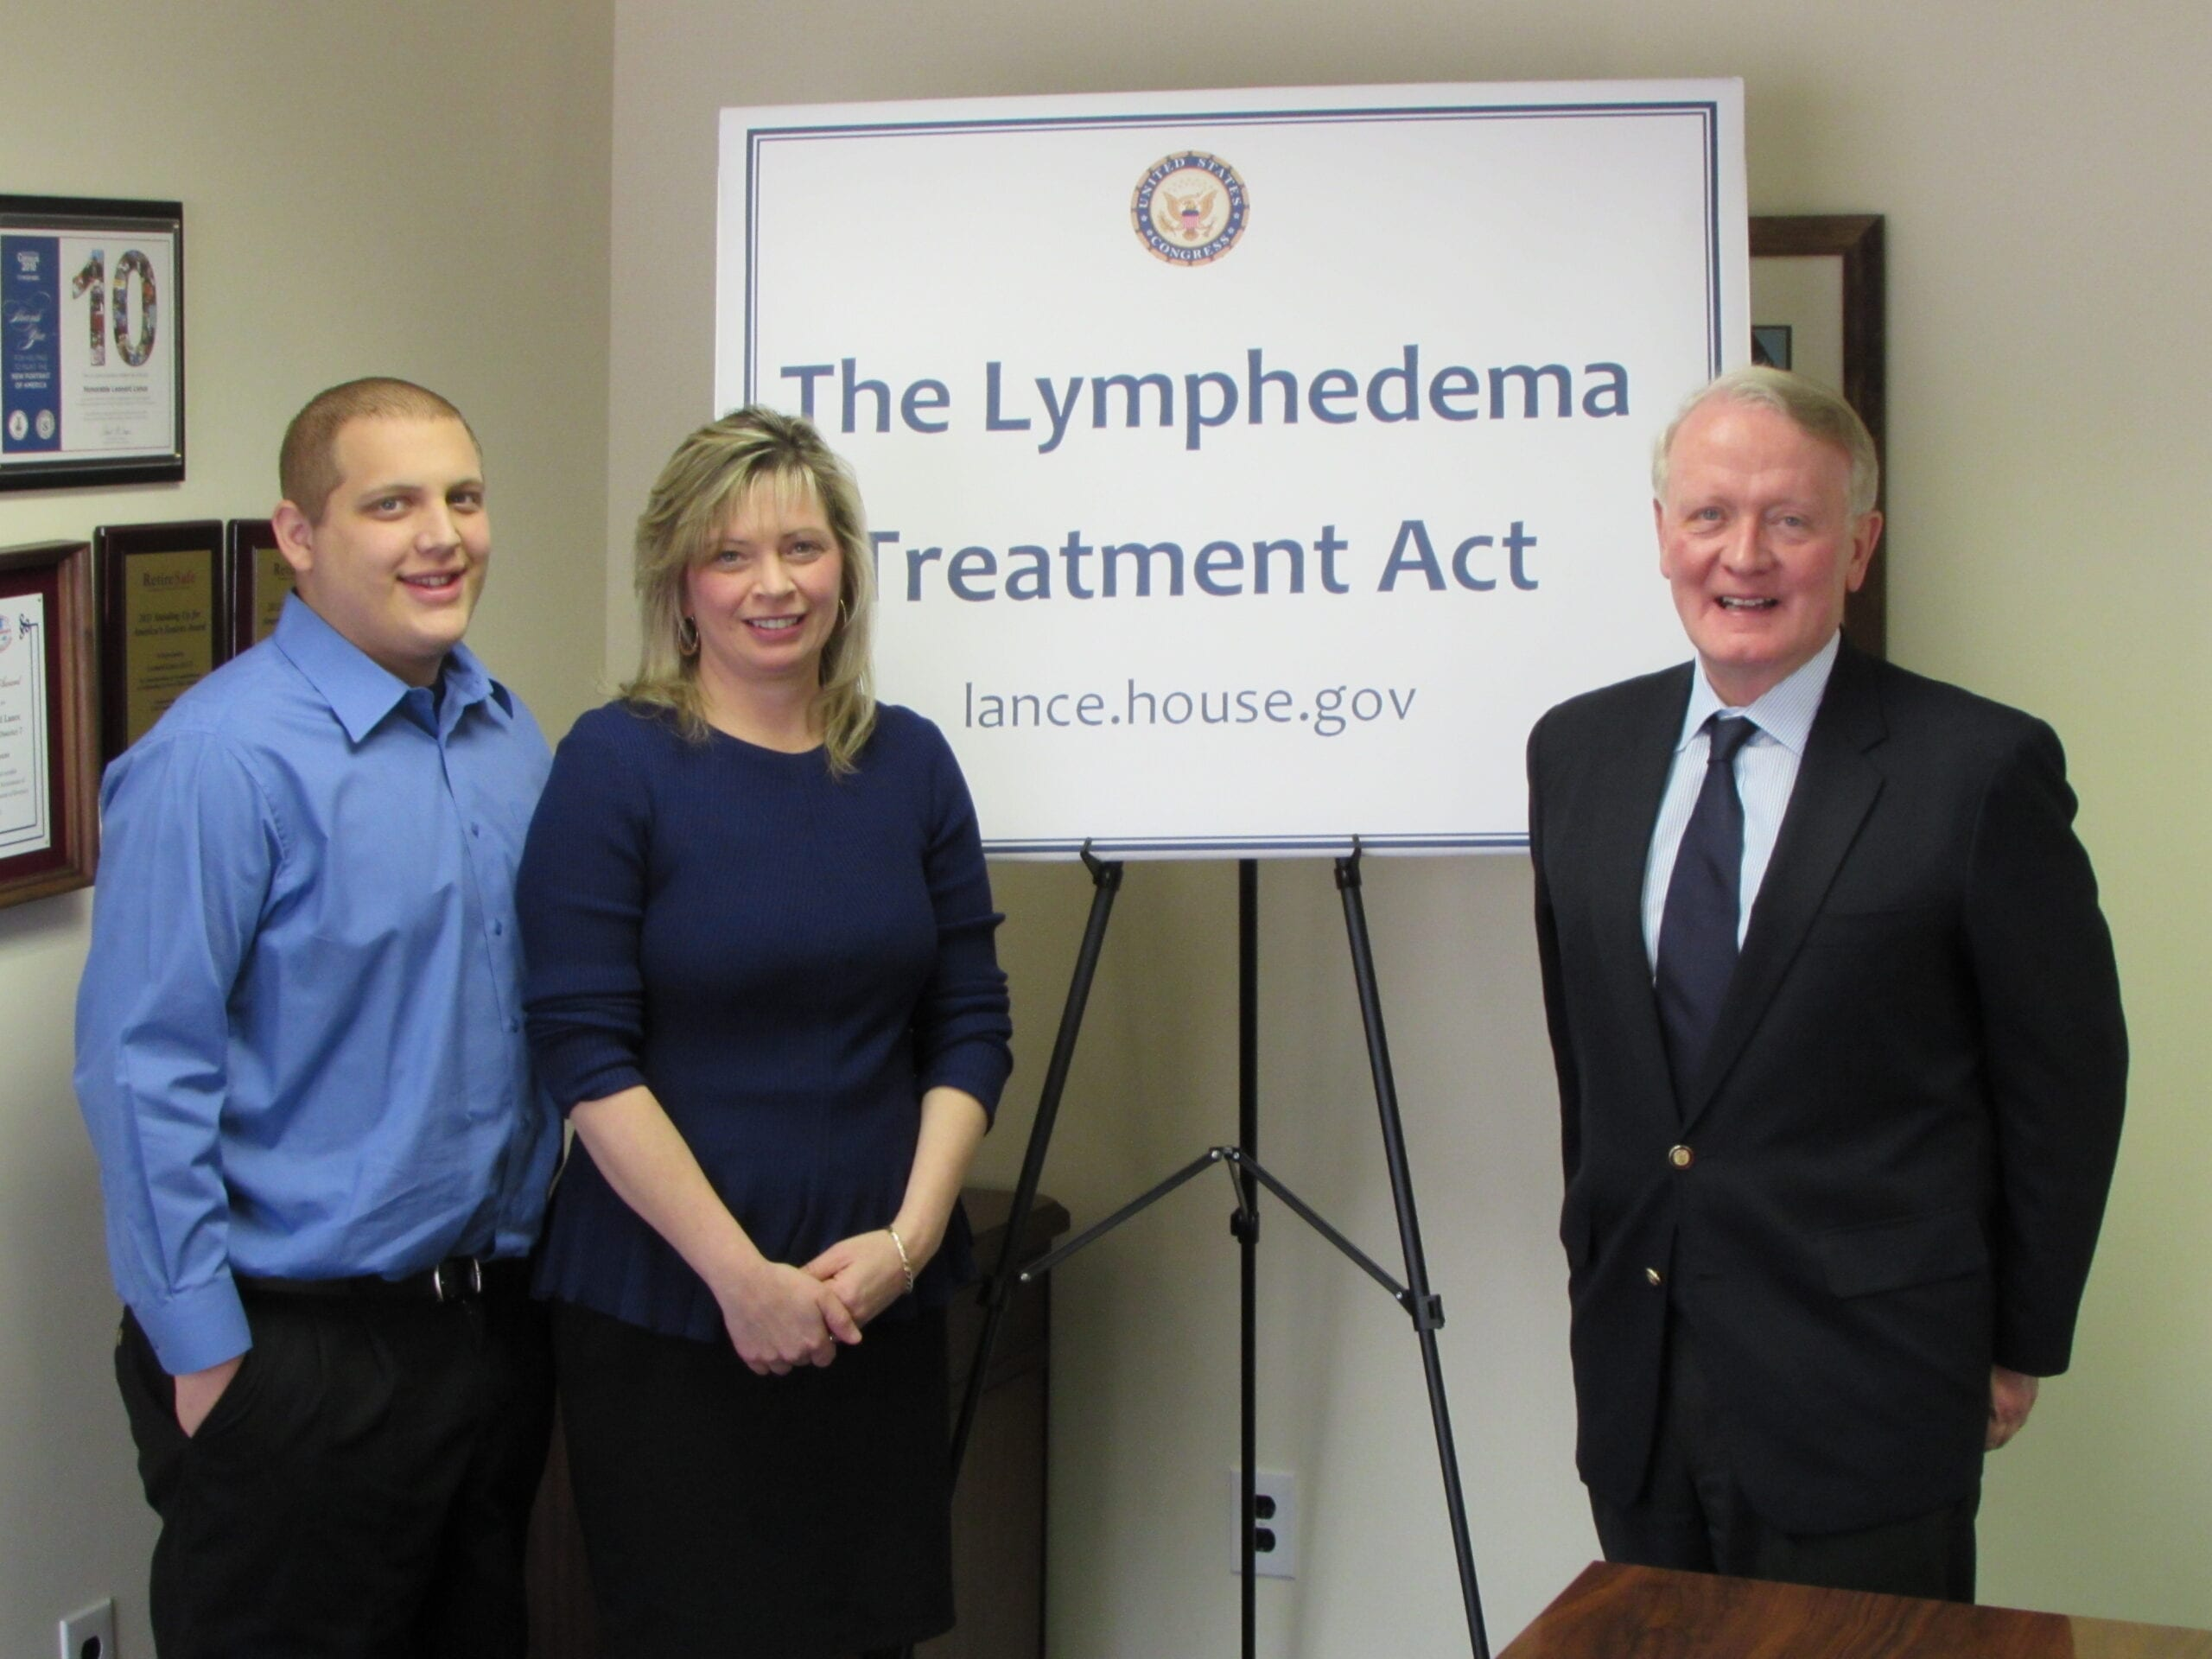 Lisa and her son Michael, who has primary lymphedema, meeting with their Congressman, Leonard Lance, who is a co-lead of the Lymphedema Treatment Act.